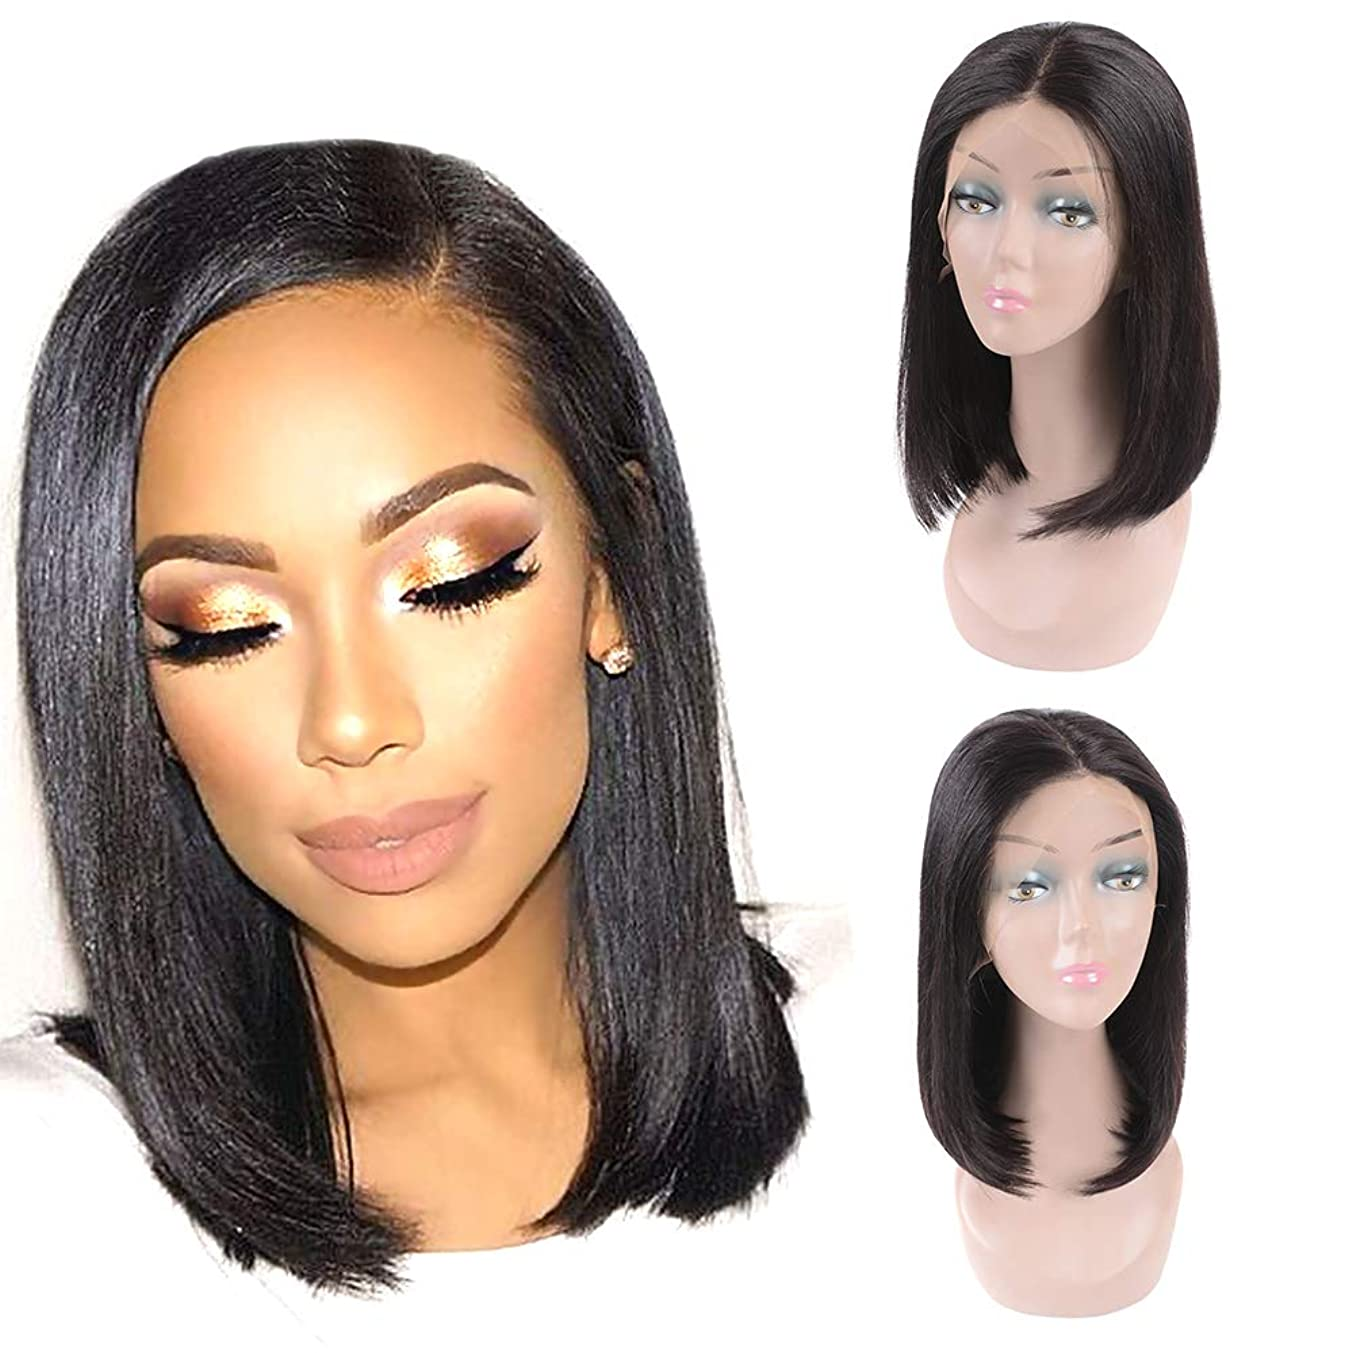 Gabrielle Hair 14 Inch Straight Bob Wig Lace Front Human Hair (13x4-150% Density- Natural Black) Pre Plucked with Baby Hair Brazilian Remy Human Hair Bob Straight Lace Frontal Wigs